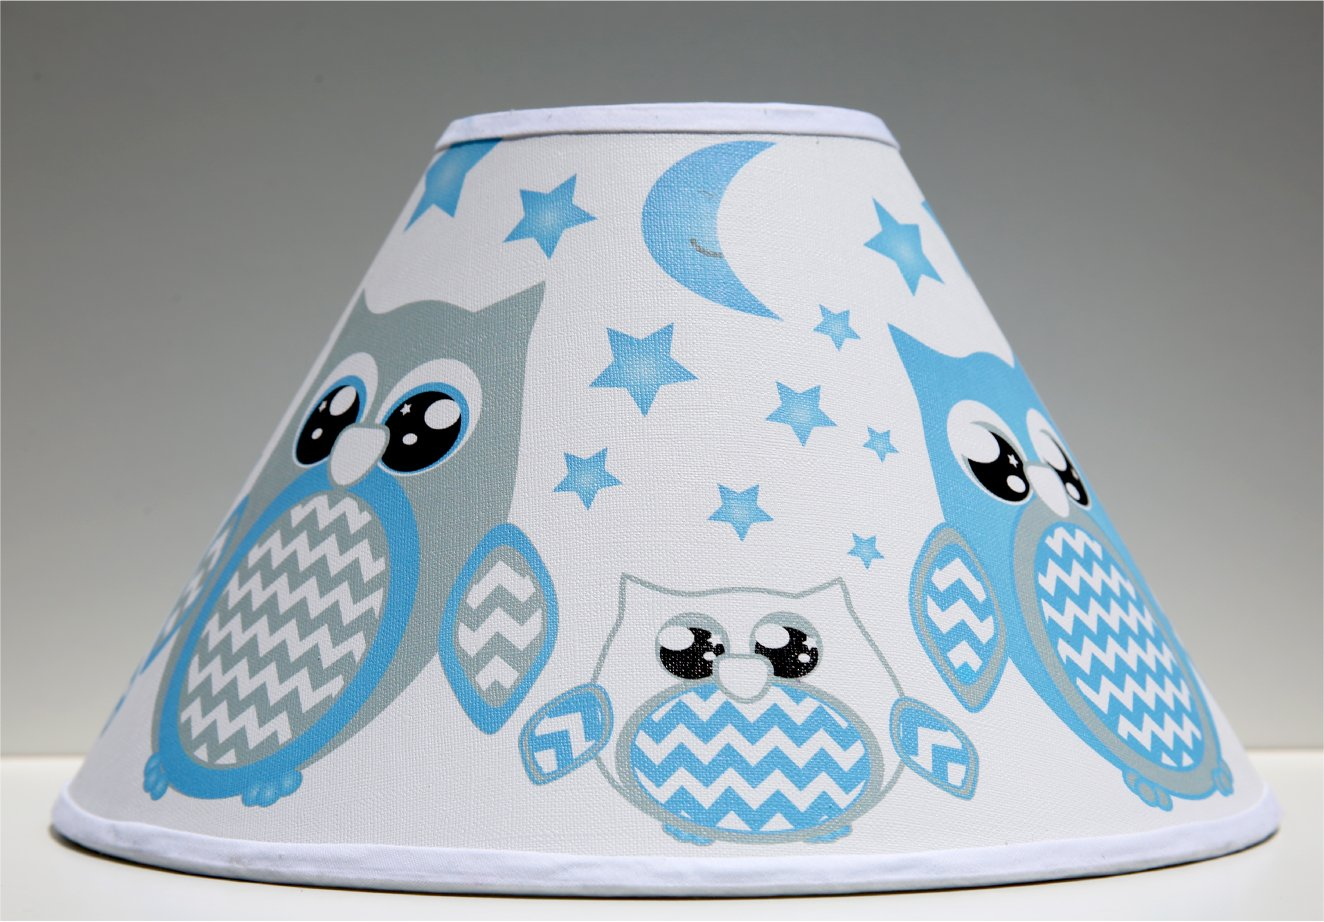 Blue Owl Lamp Shade/Children's Blue Owl Woodland Forest Animal Nursery Room Decor